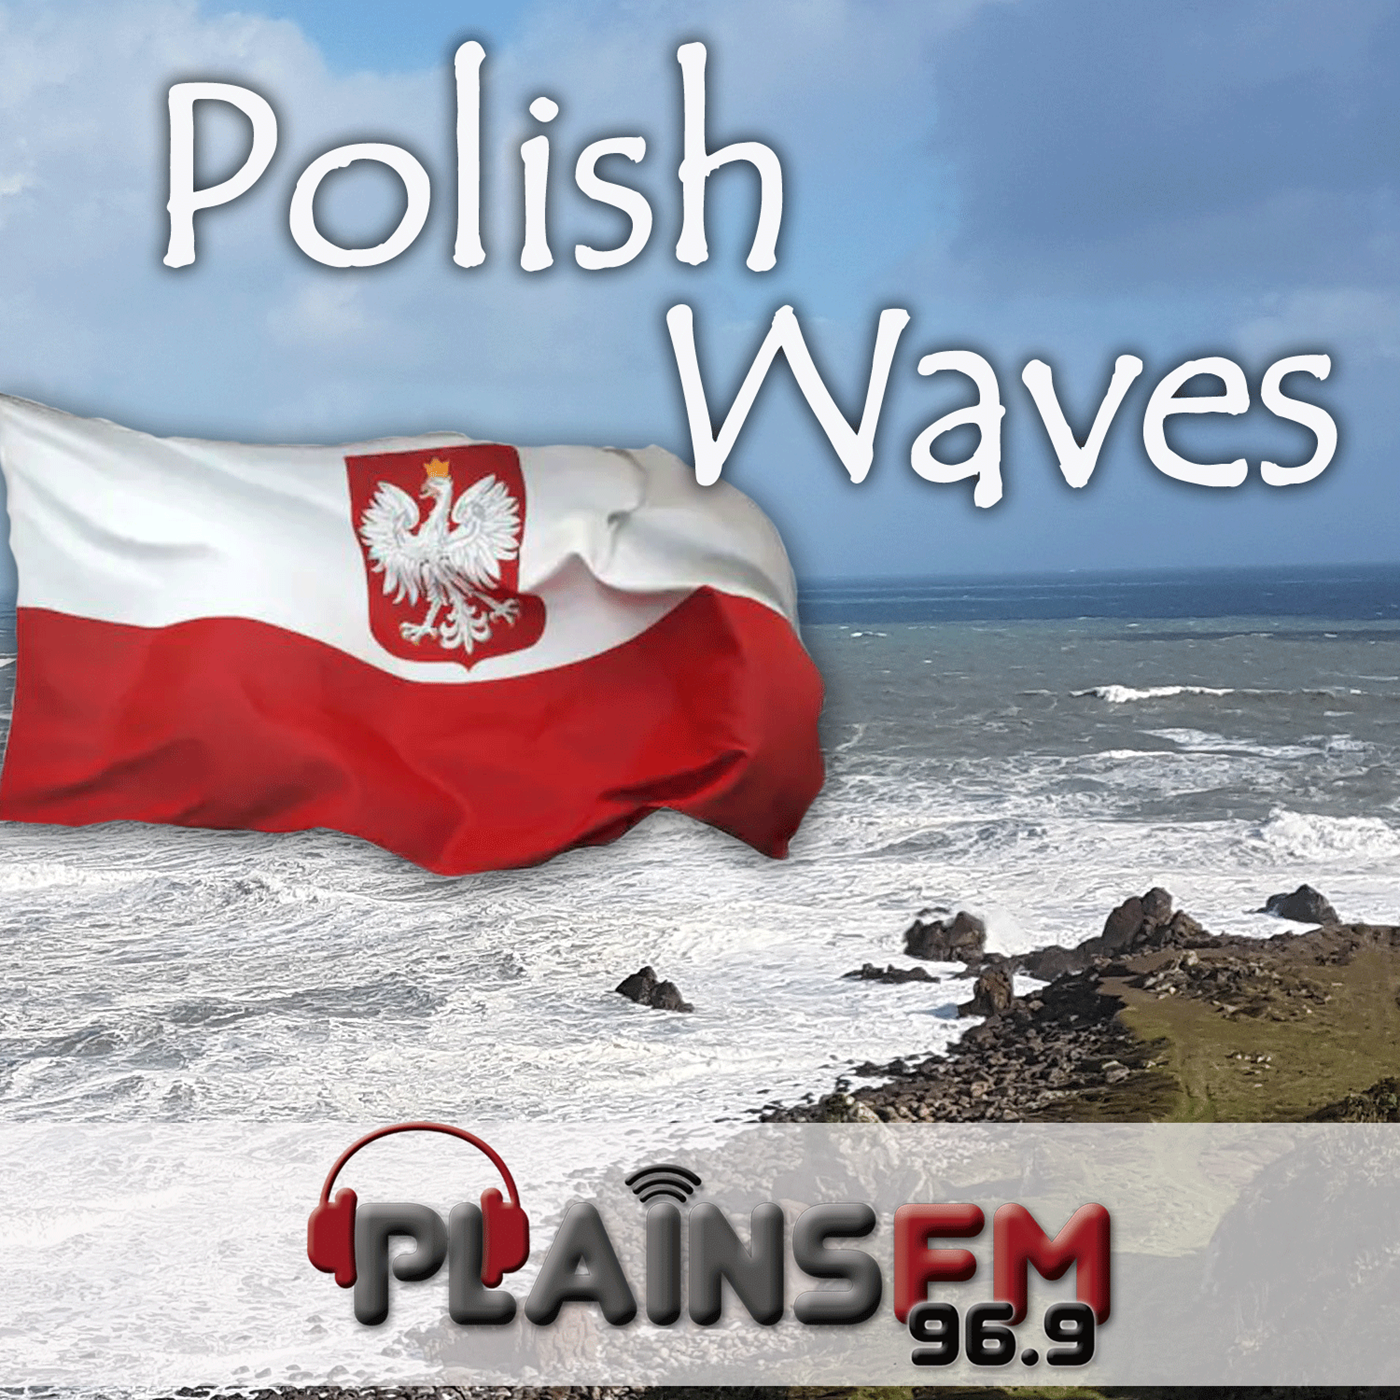 https://cdn.accessradio.org/StationFolder/plainsfm/Images/PolishWaves_temp.png